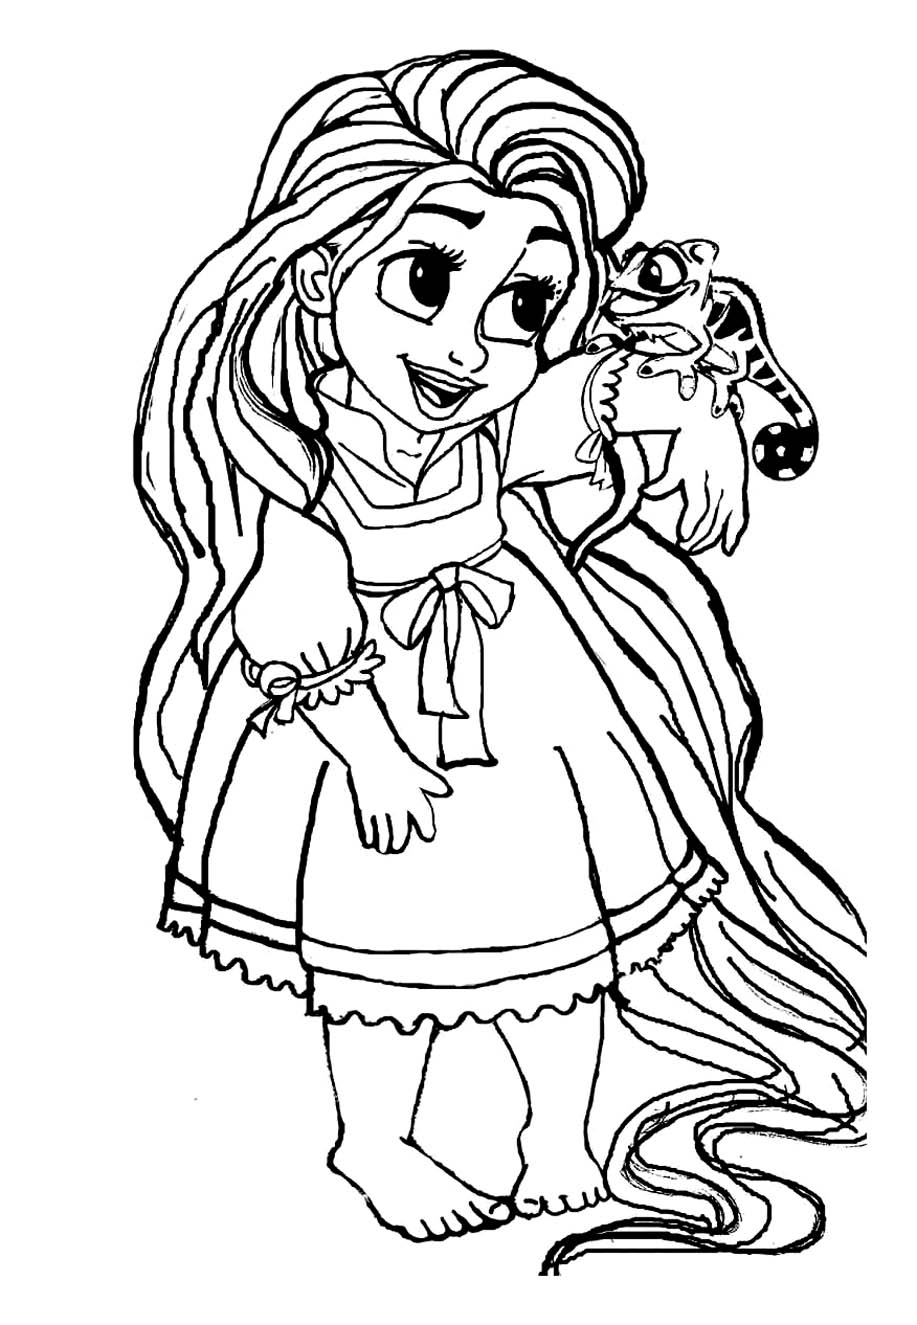 A Little Rapunzel Coloring Page